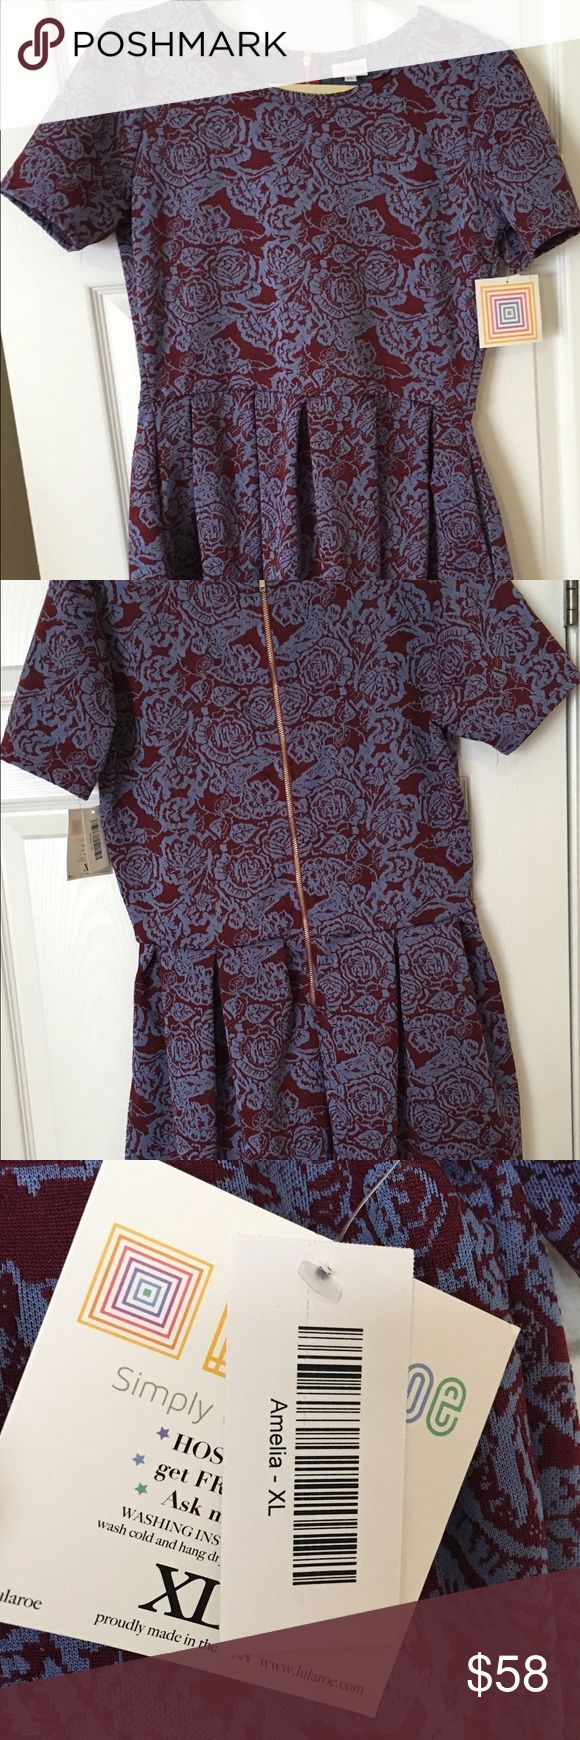 LuLaRoe Amelia Dress Brand new never worn LuLaRoe Amelia dress. It is a beautiful purple and burgundy floral pattern. Size XL. Thank you for taking a look. :) LuLaRoe Dresses